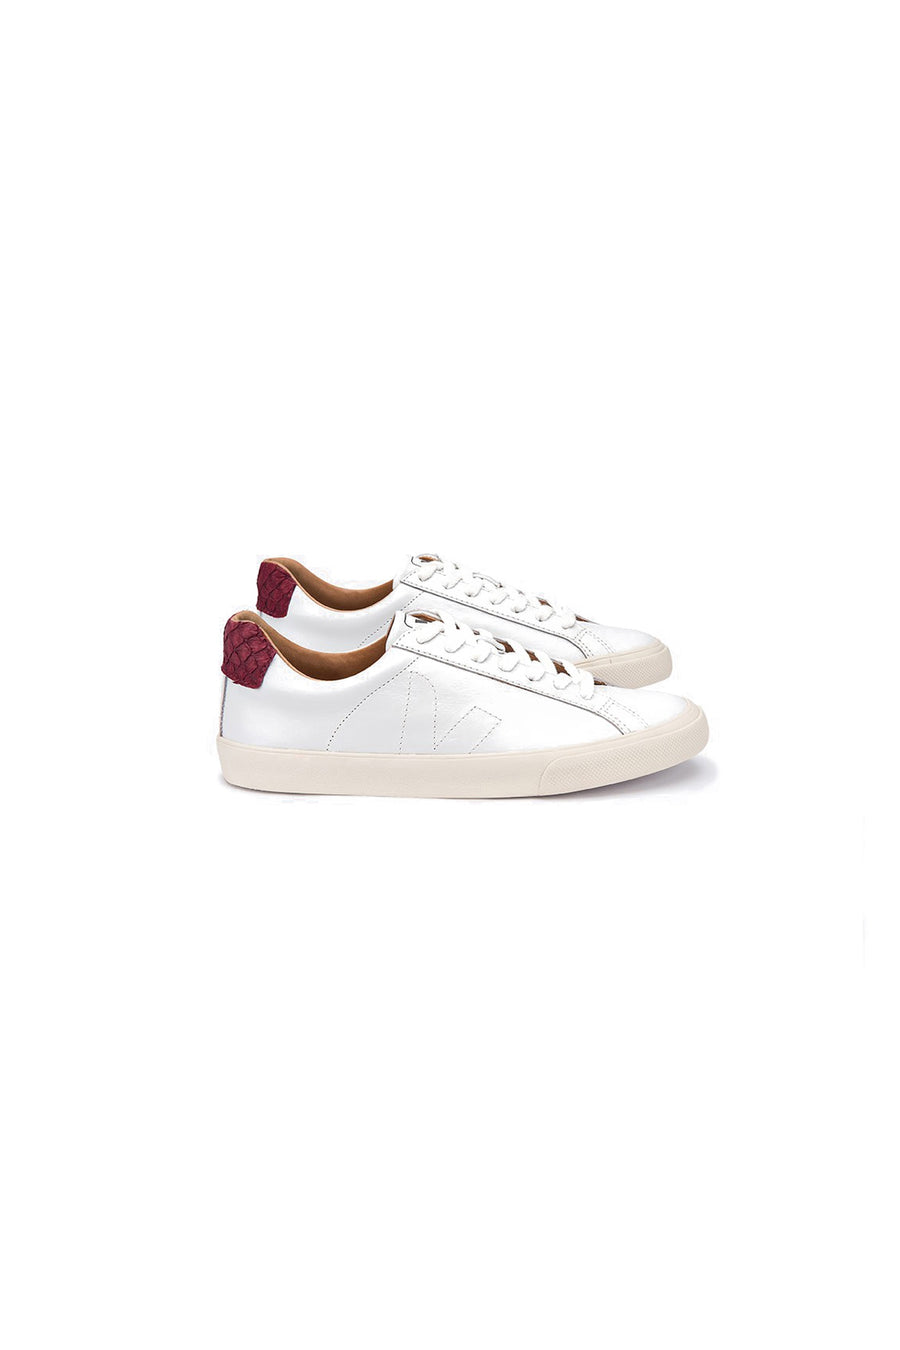 Marsala Leather Sneakers with Tilapia Panel White-Marsala